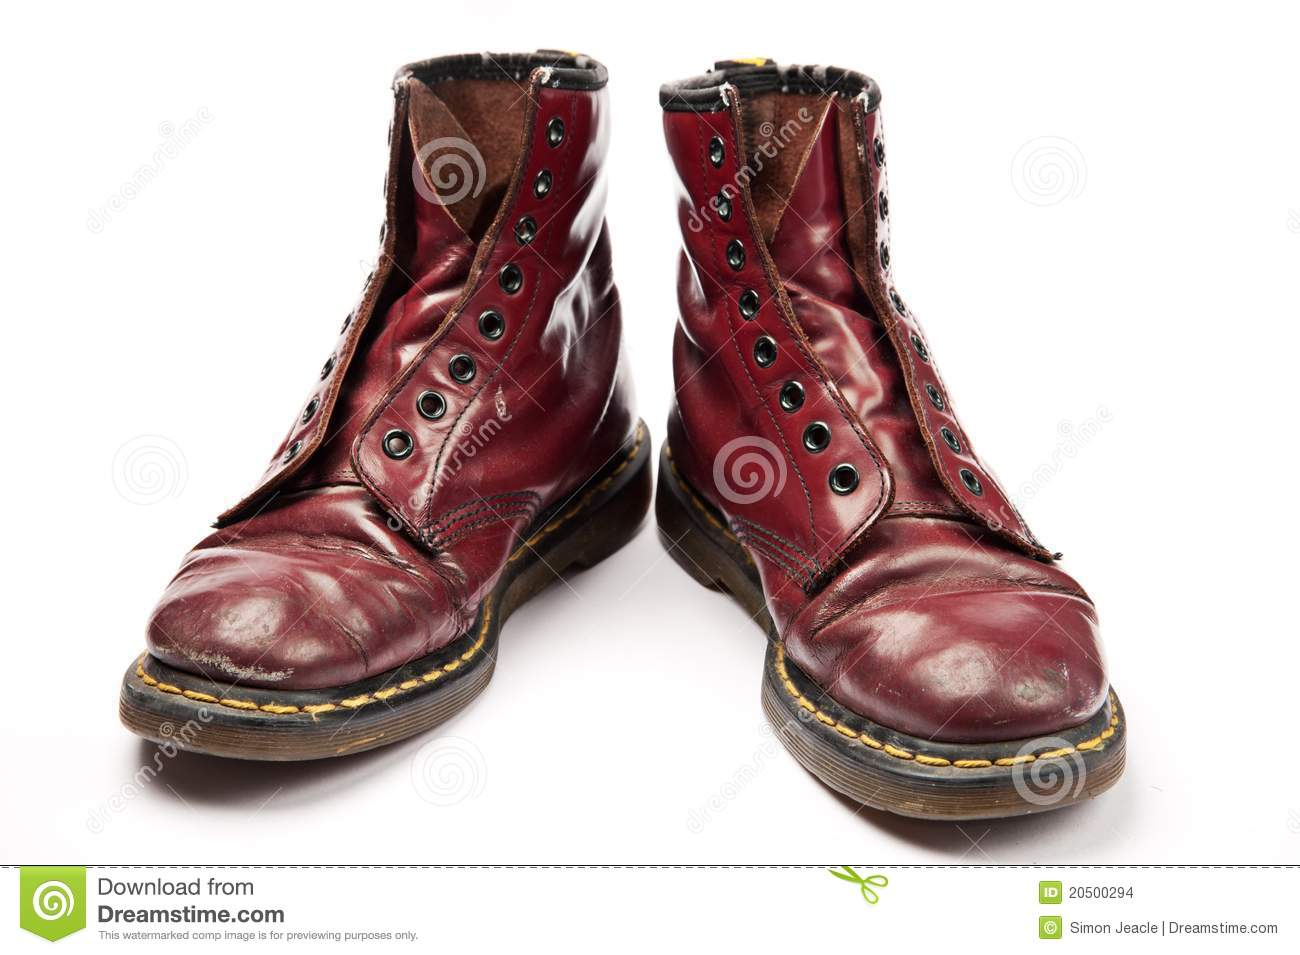 Old Work Boots isolated on a white background